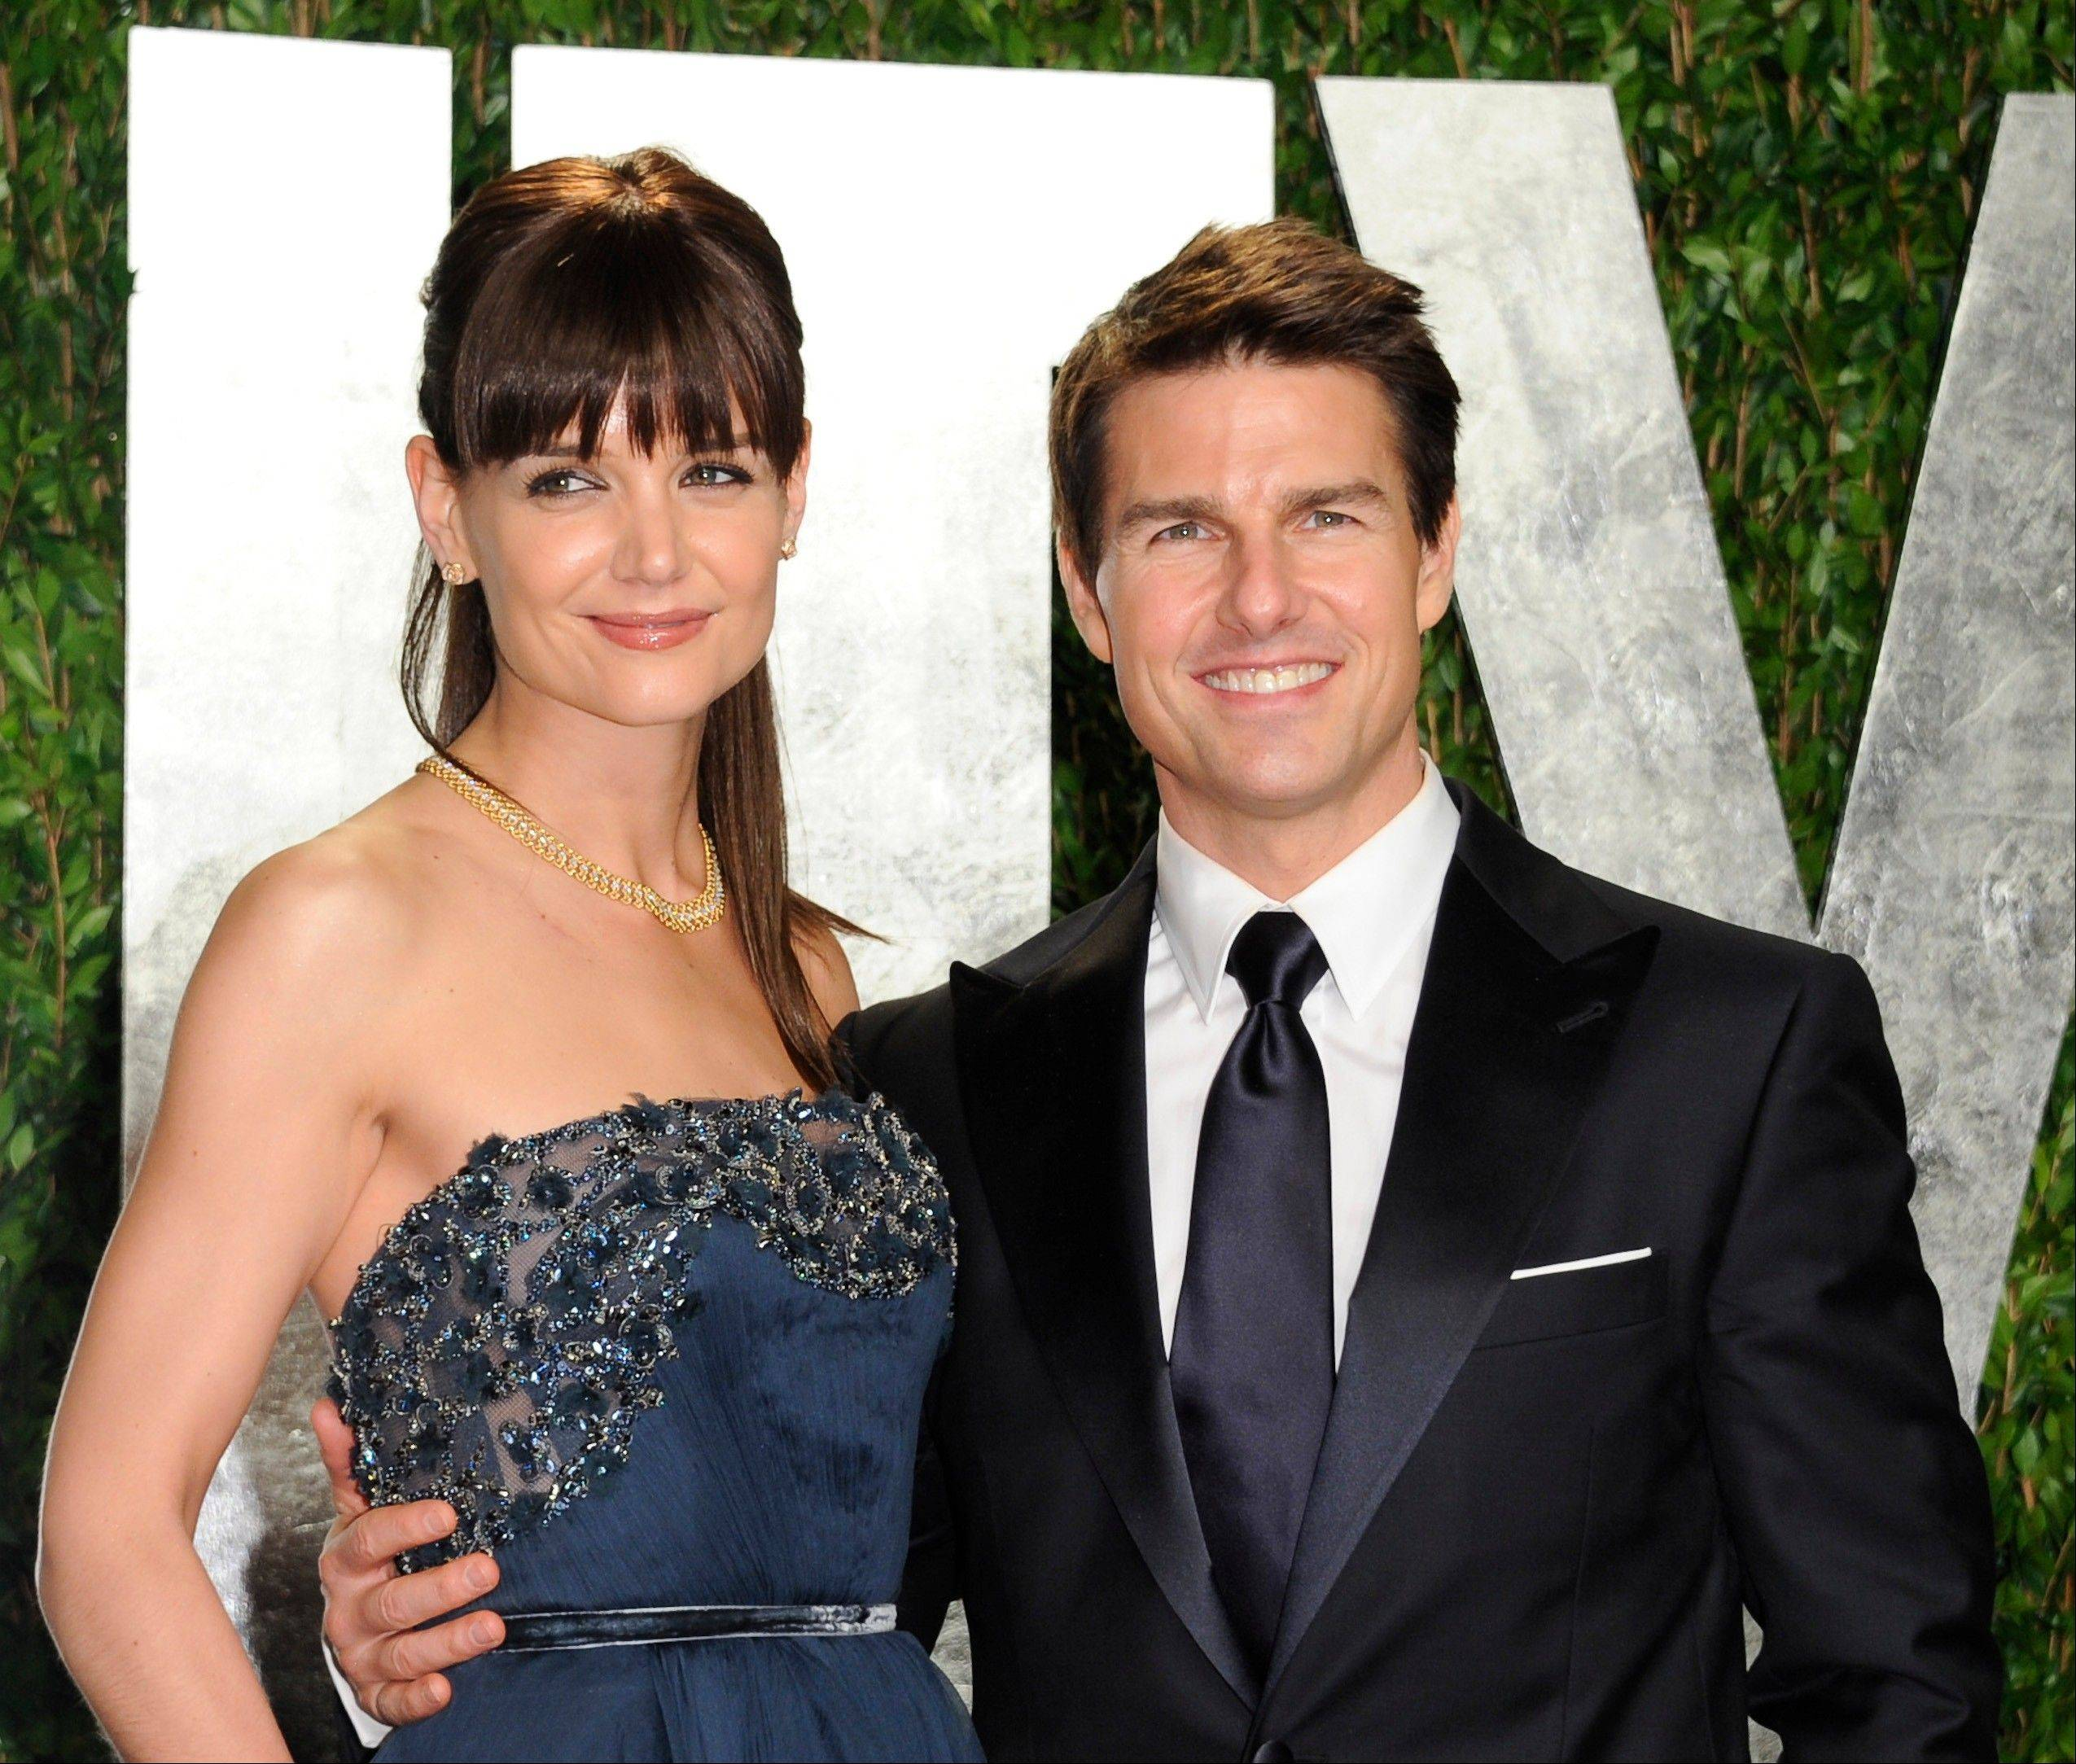 A settlement has been reached in the divorce of actors Katie Holmes and Tom Cruise.